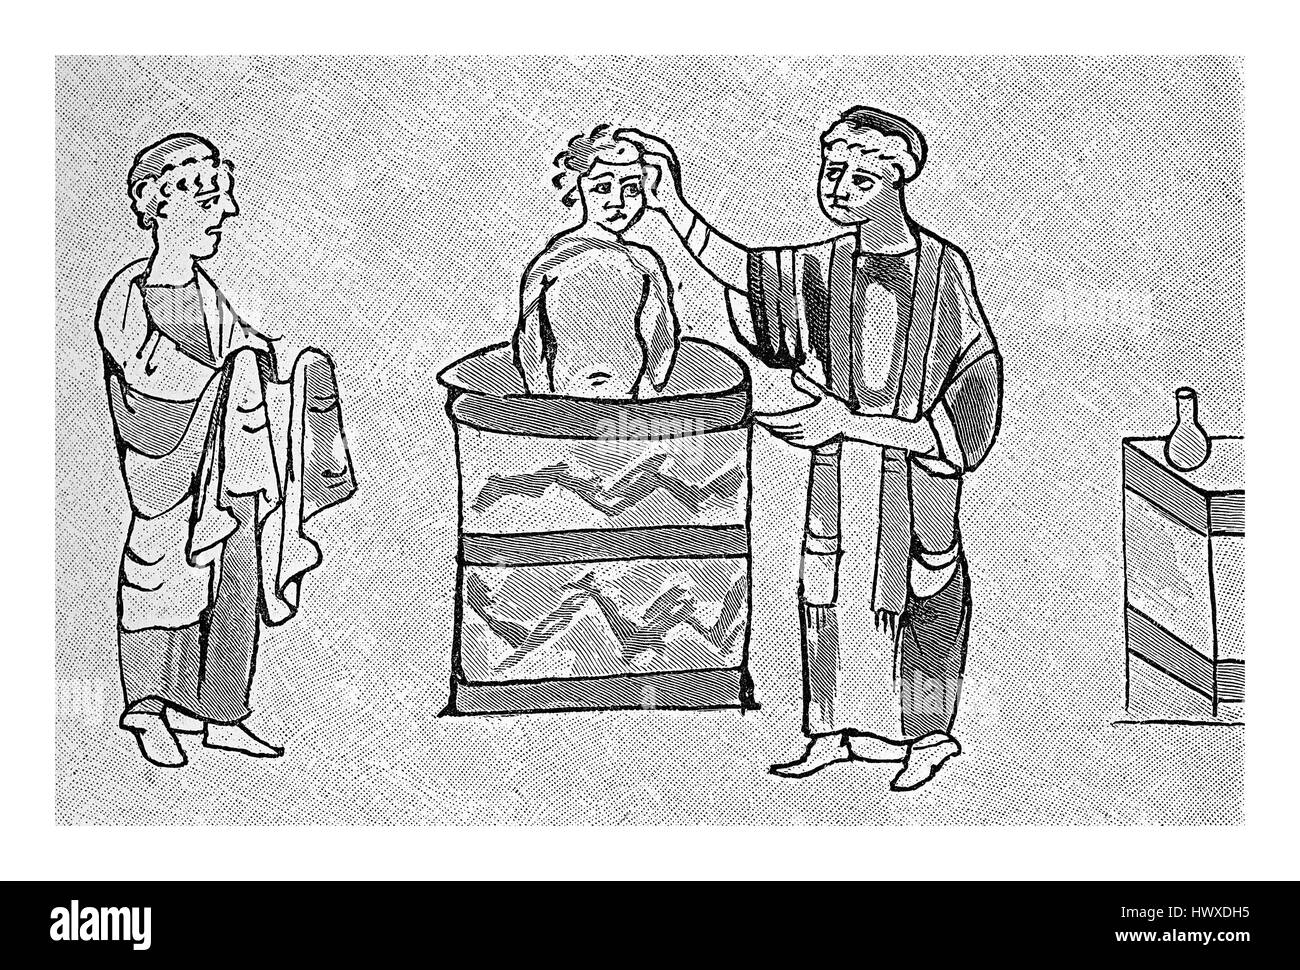 Baptism of a Jewish boy, medieval painting of IX century - Stock Image